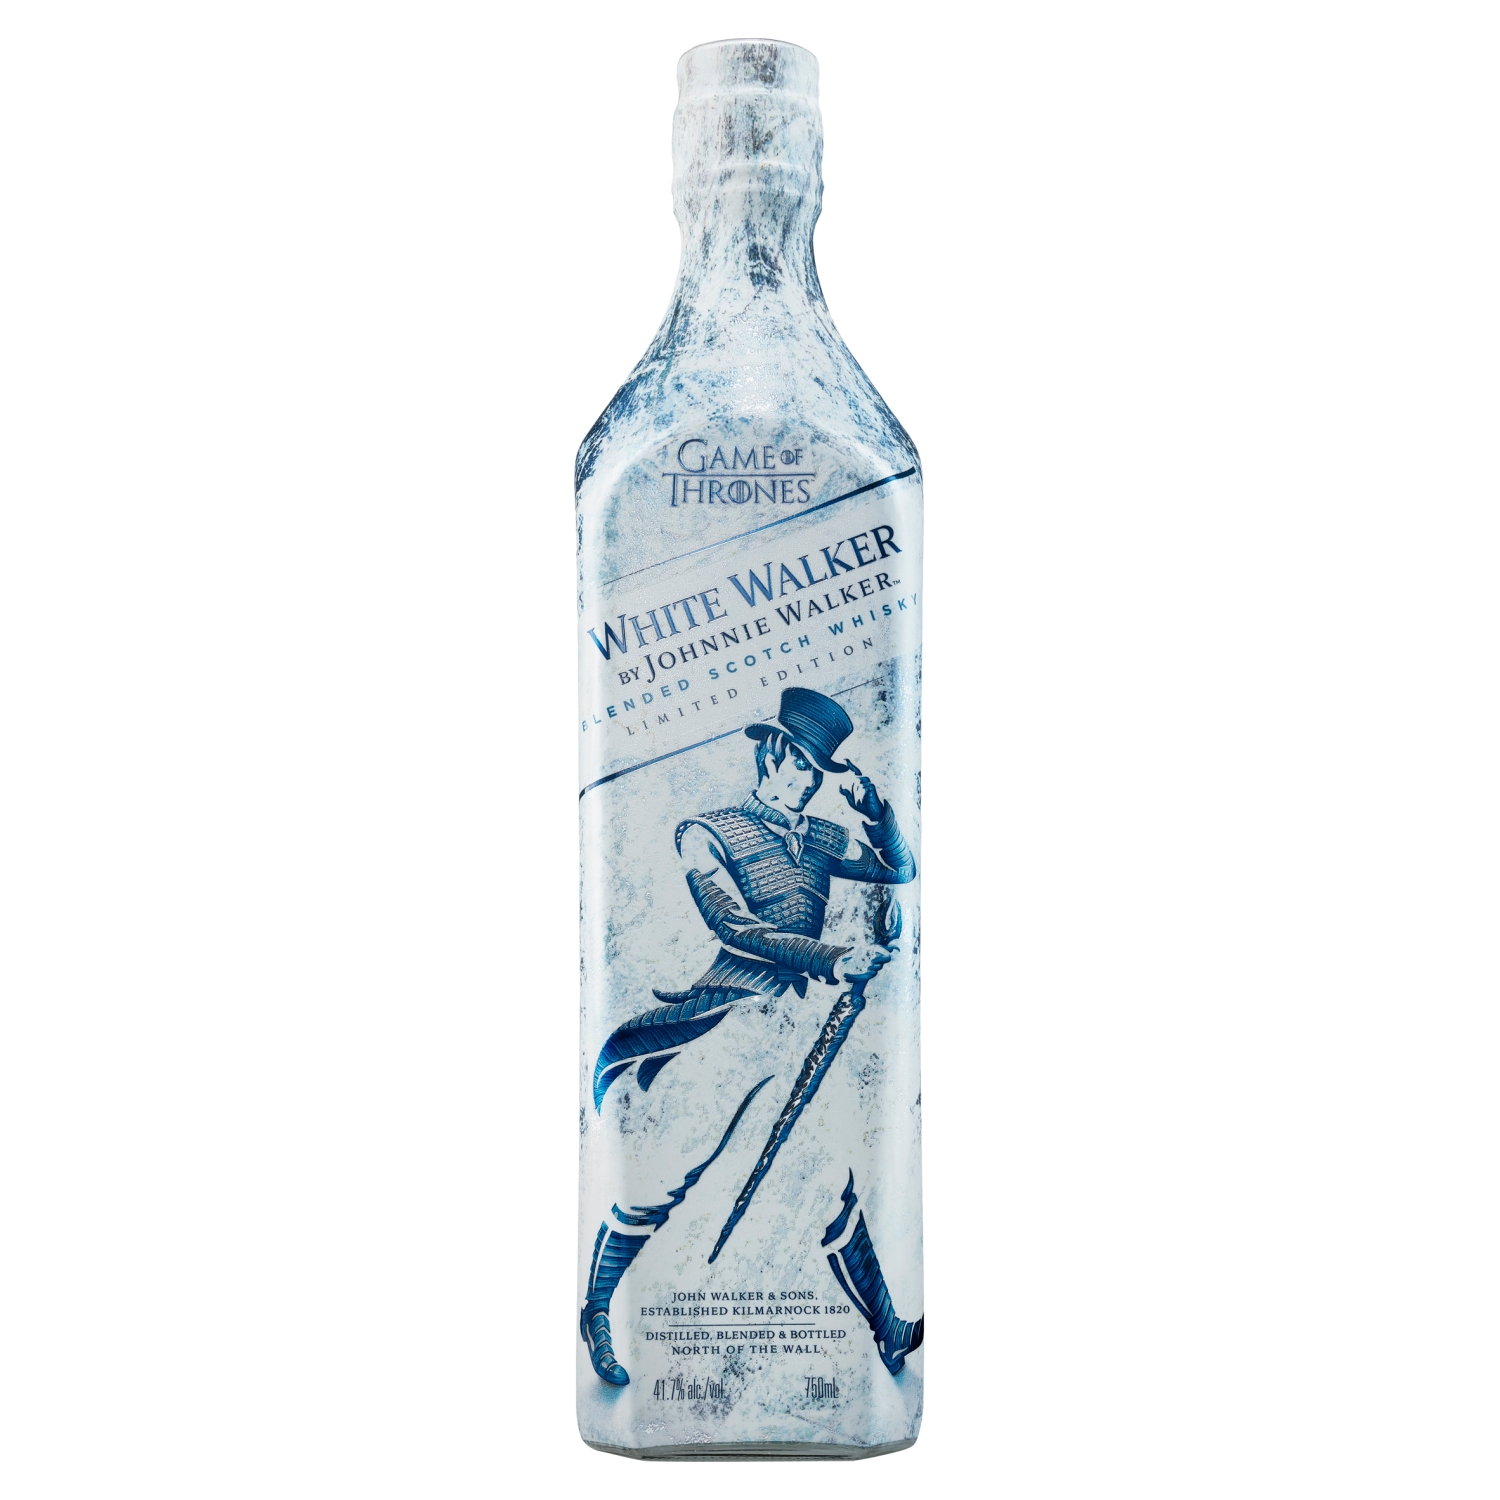 Johnnie Walker White Walker Blended Scotch Whisky 70cl Game of Thrones Limited Edition